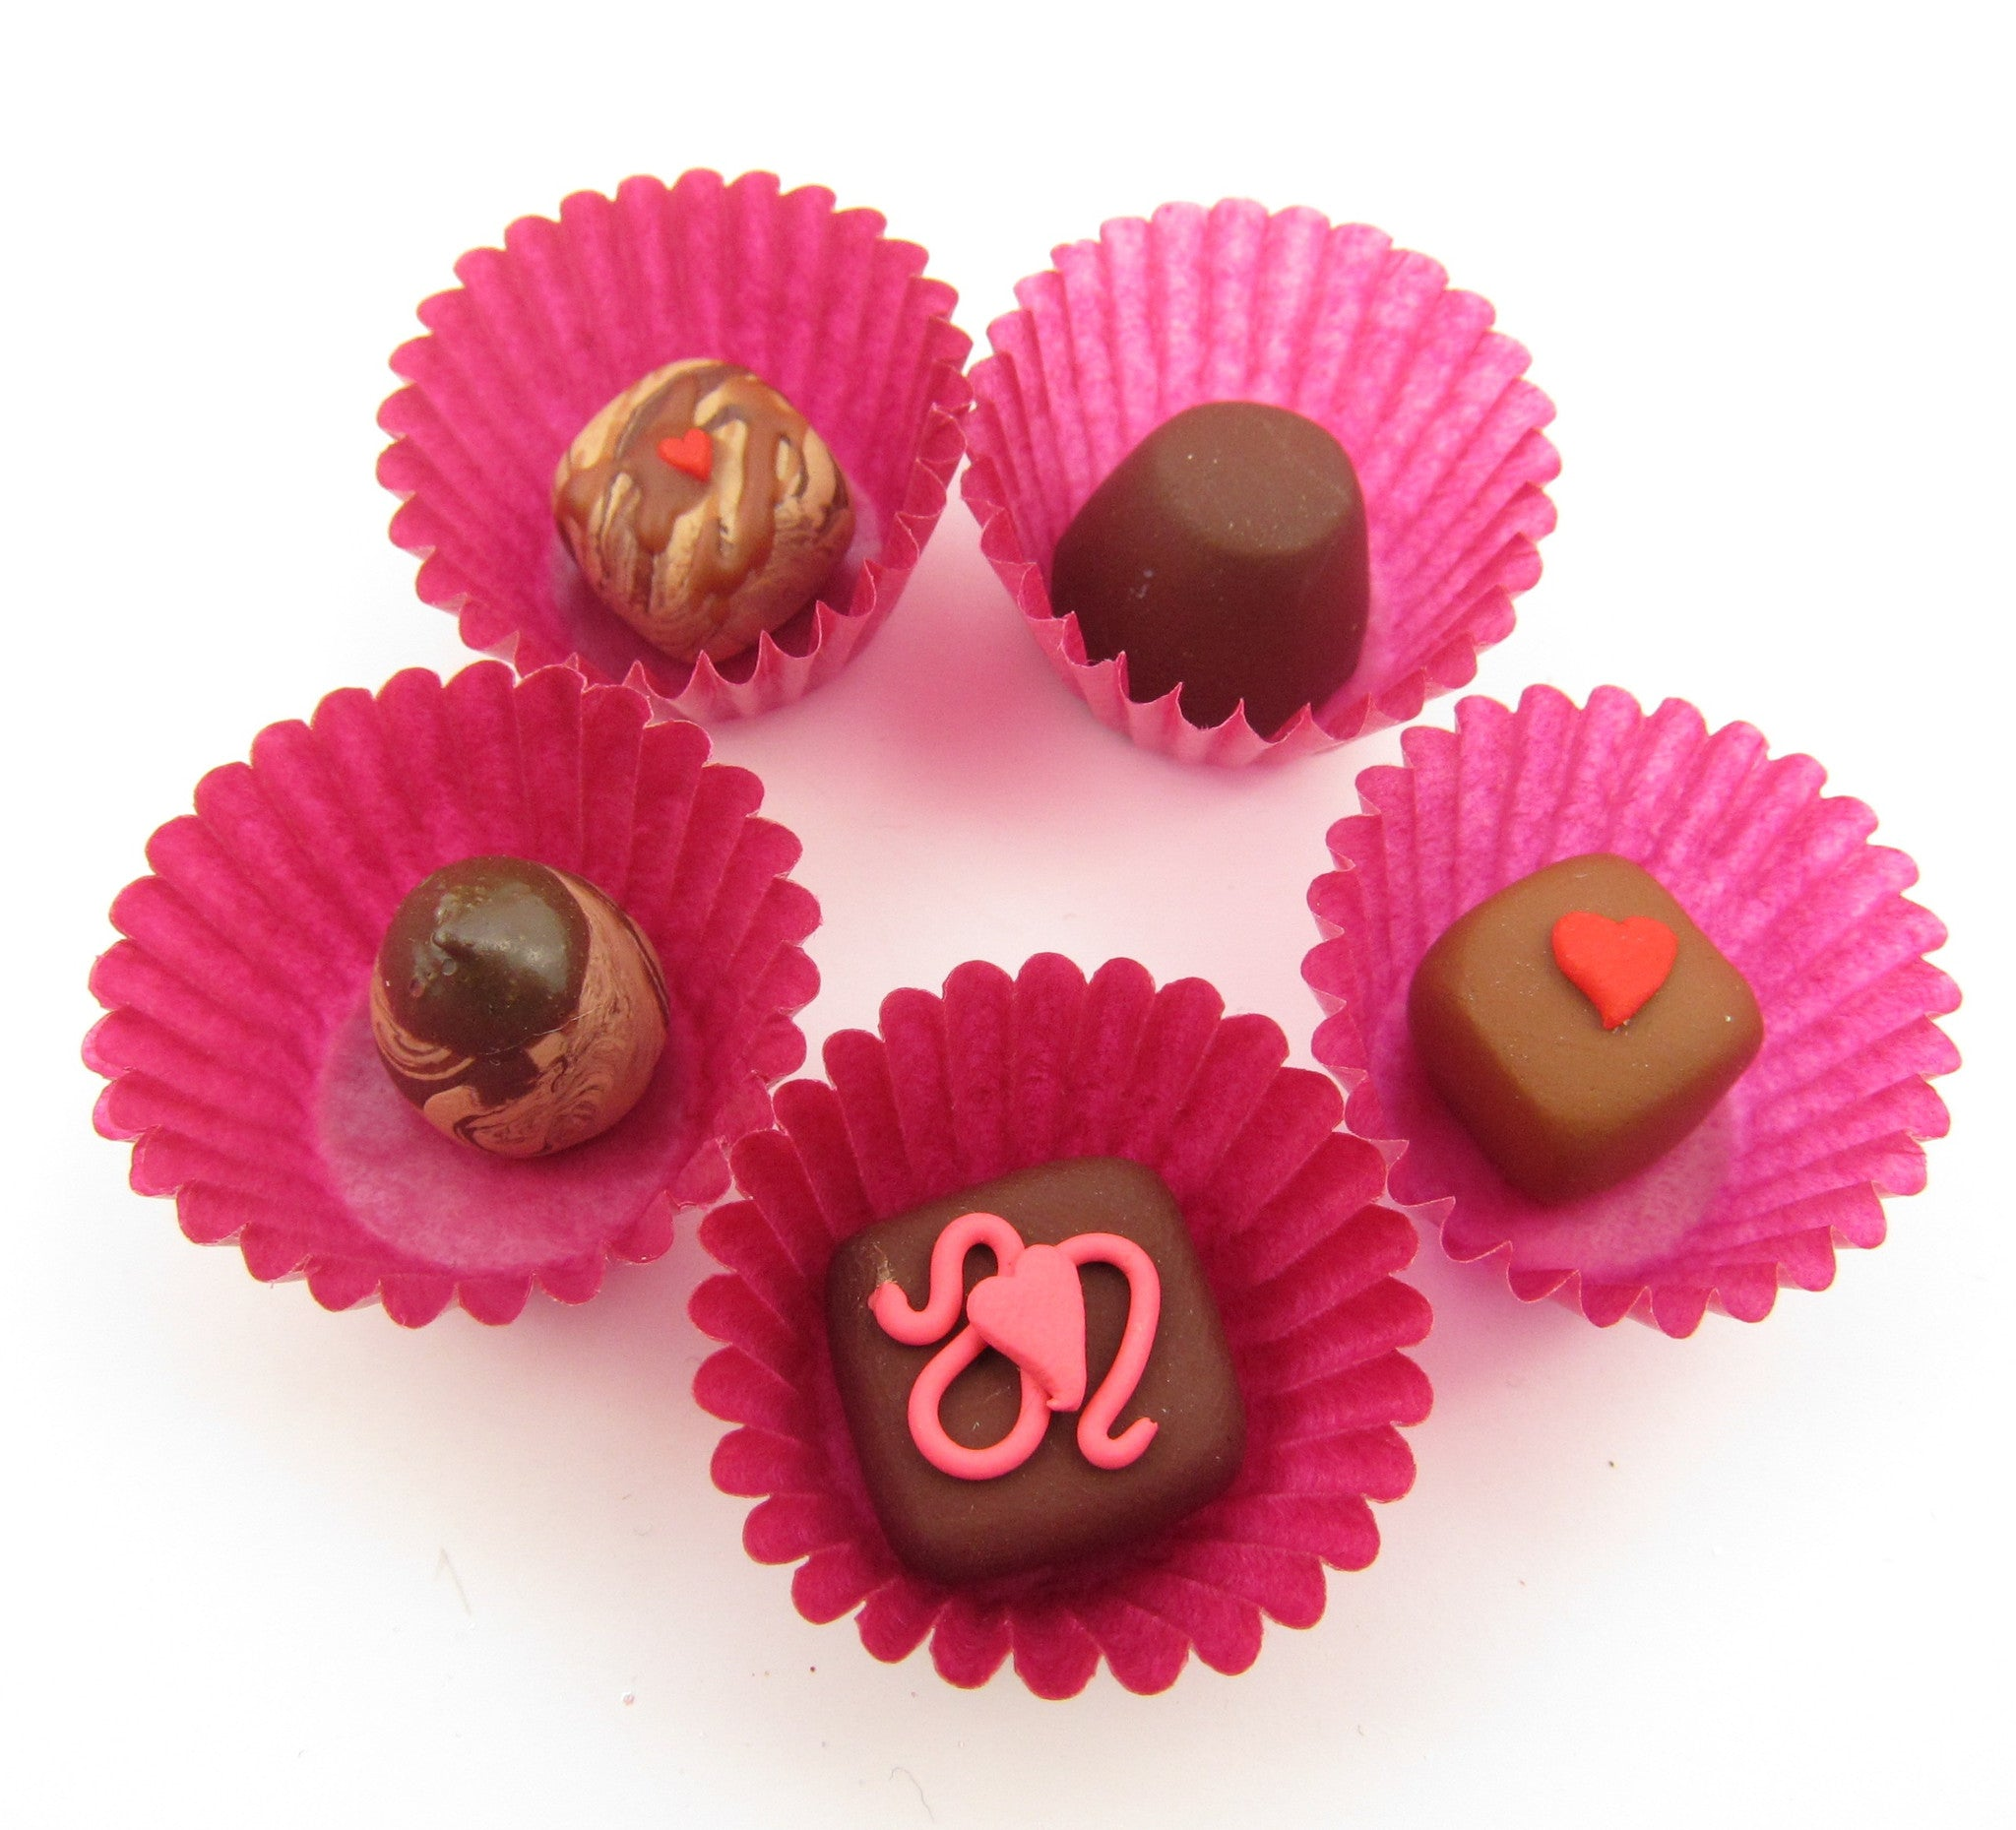 Miniature Polymer Clay Chocolates in Pink Wrappers